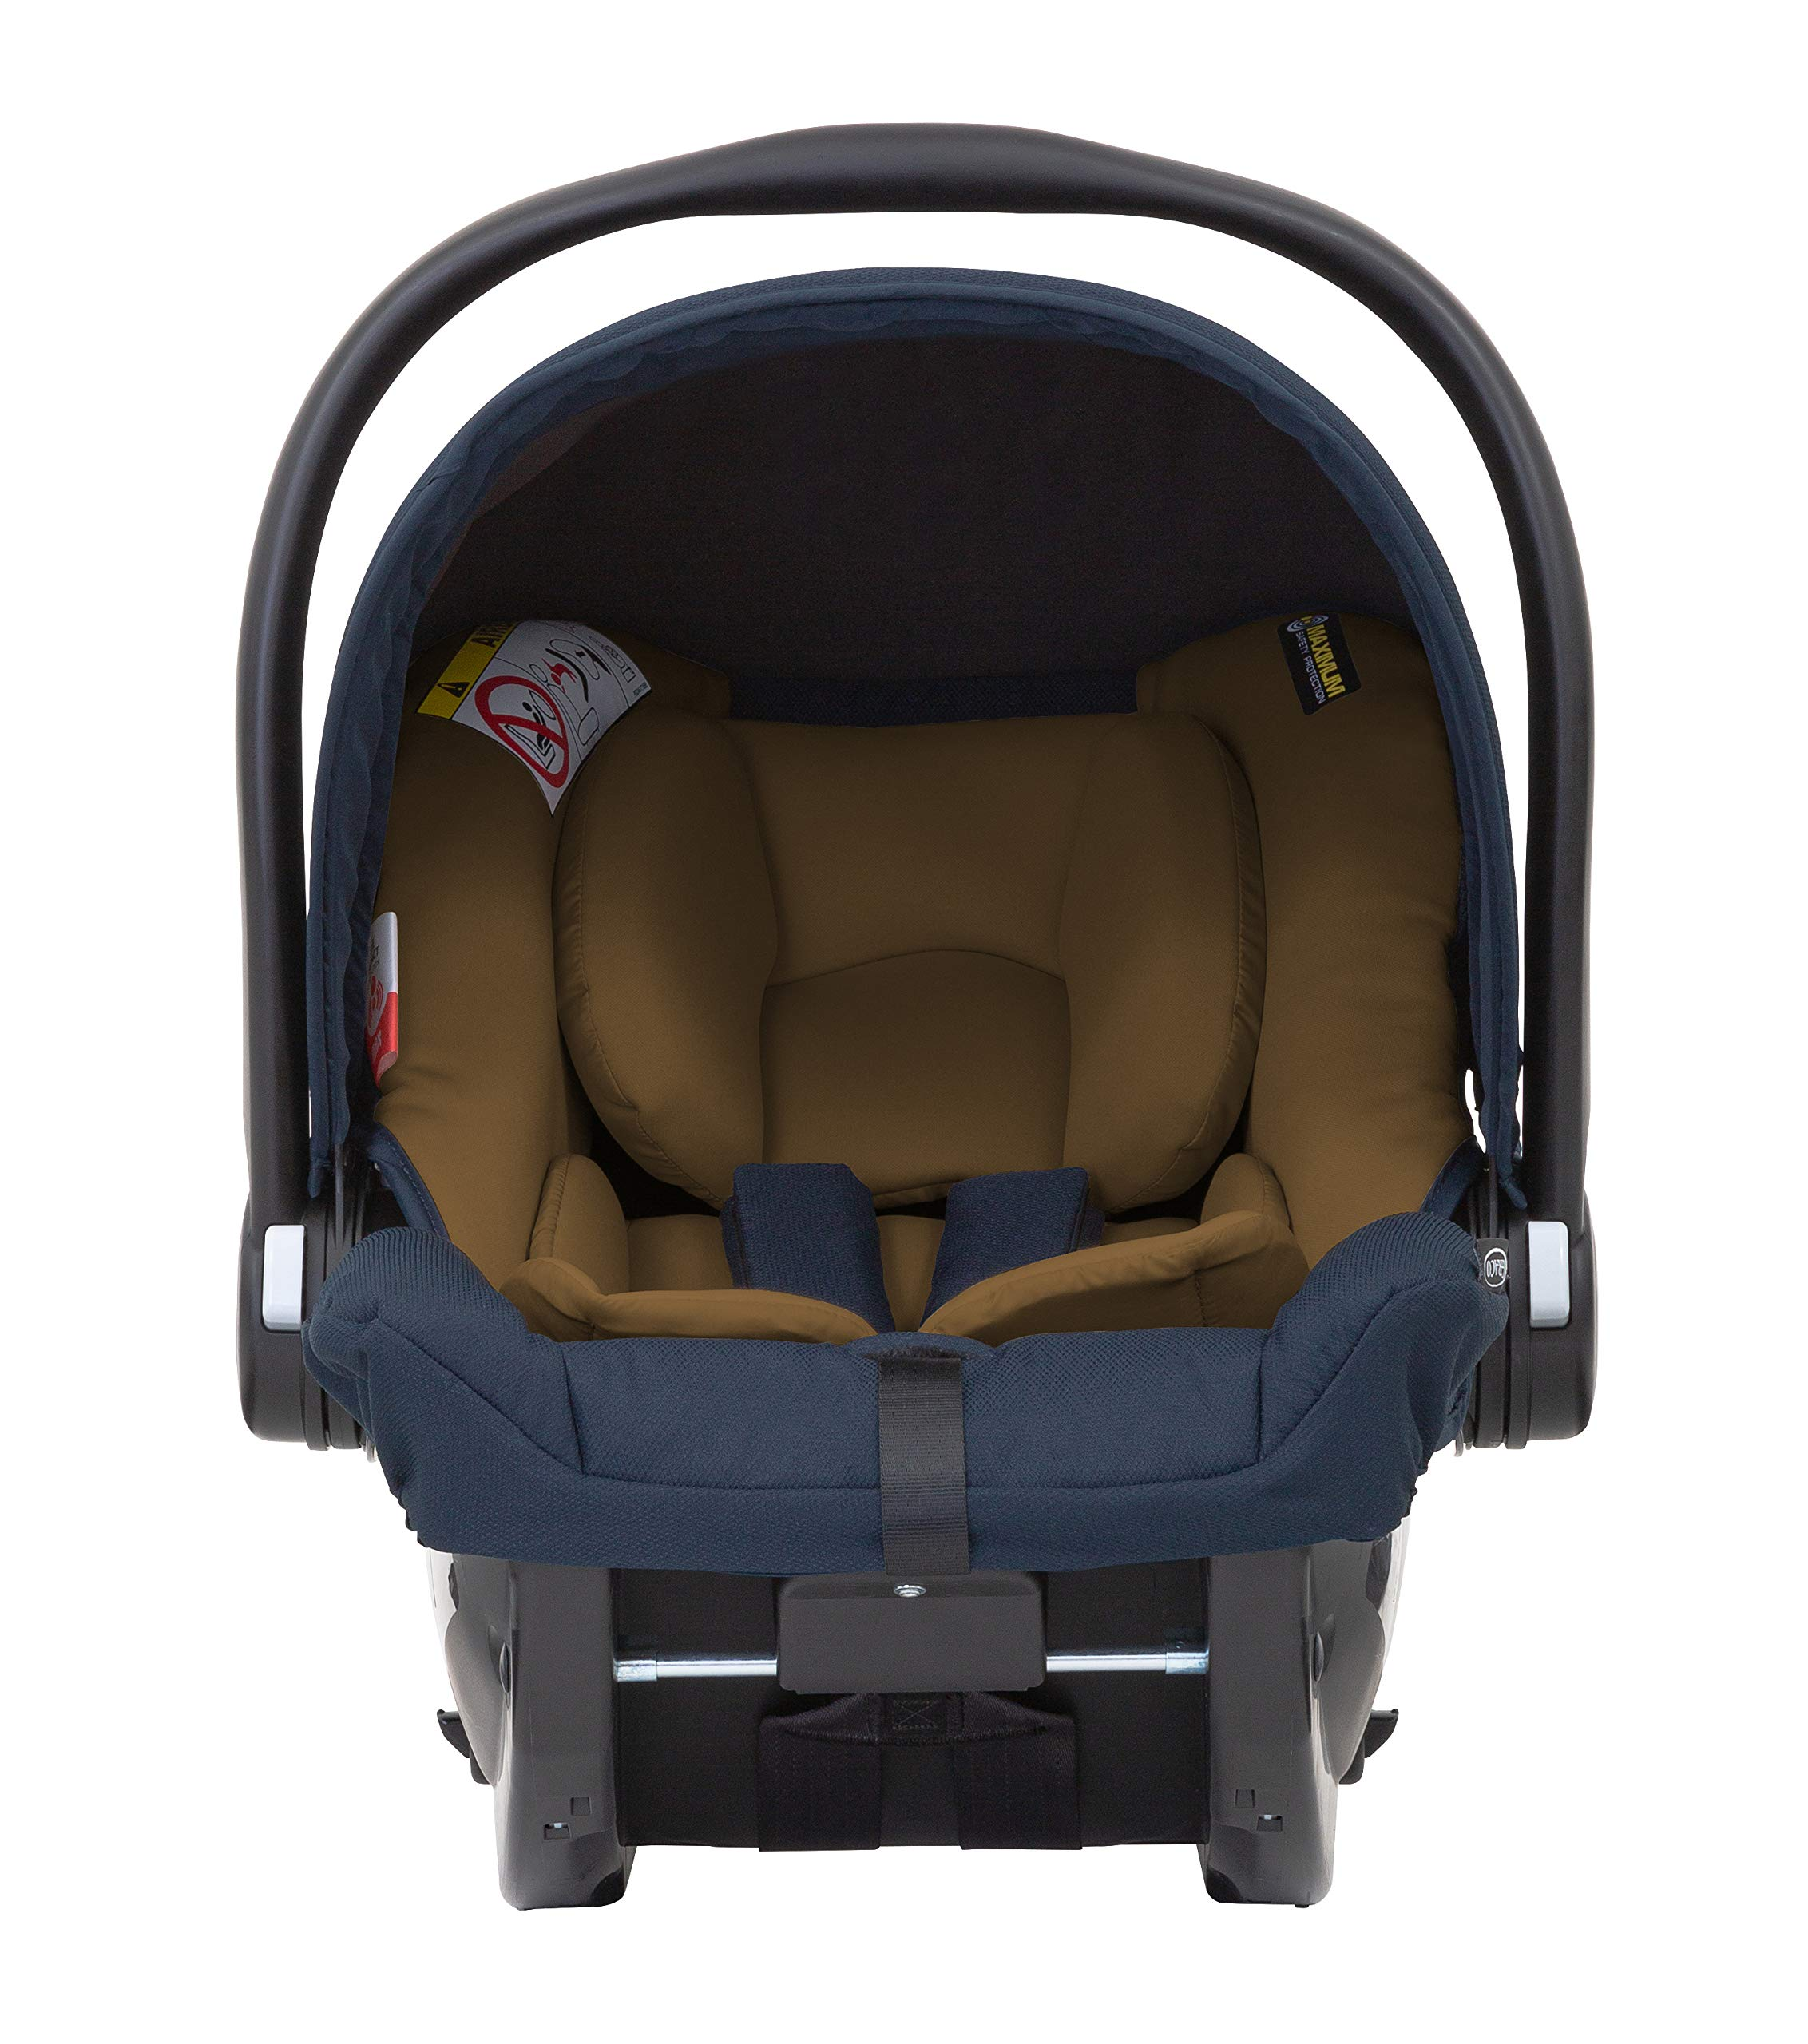 Graco Breaze Lite i-Size Travel System, Eclipse Graco From birth to 3 years approx. (0-15kg) Travel system package with snug essentials isize infant car seat included Lightweight stroller at only 6.5kg 6